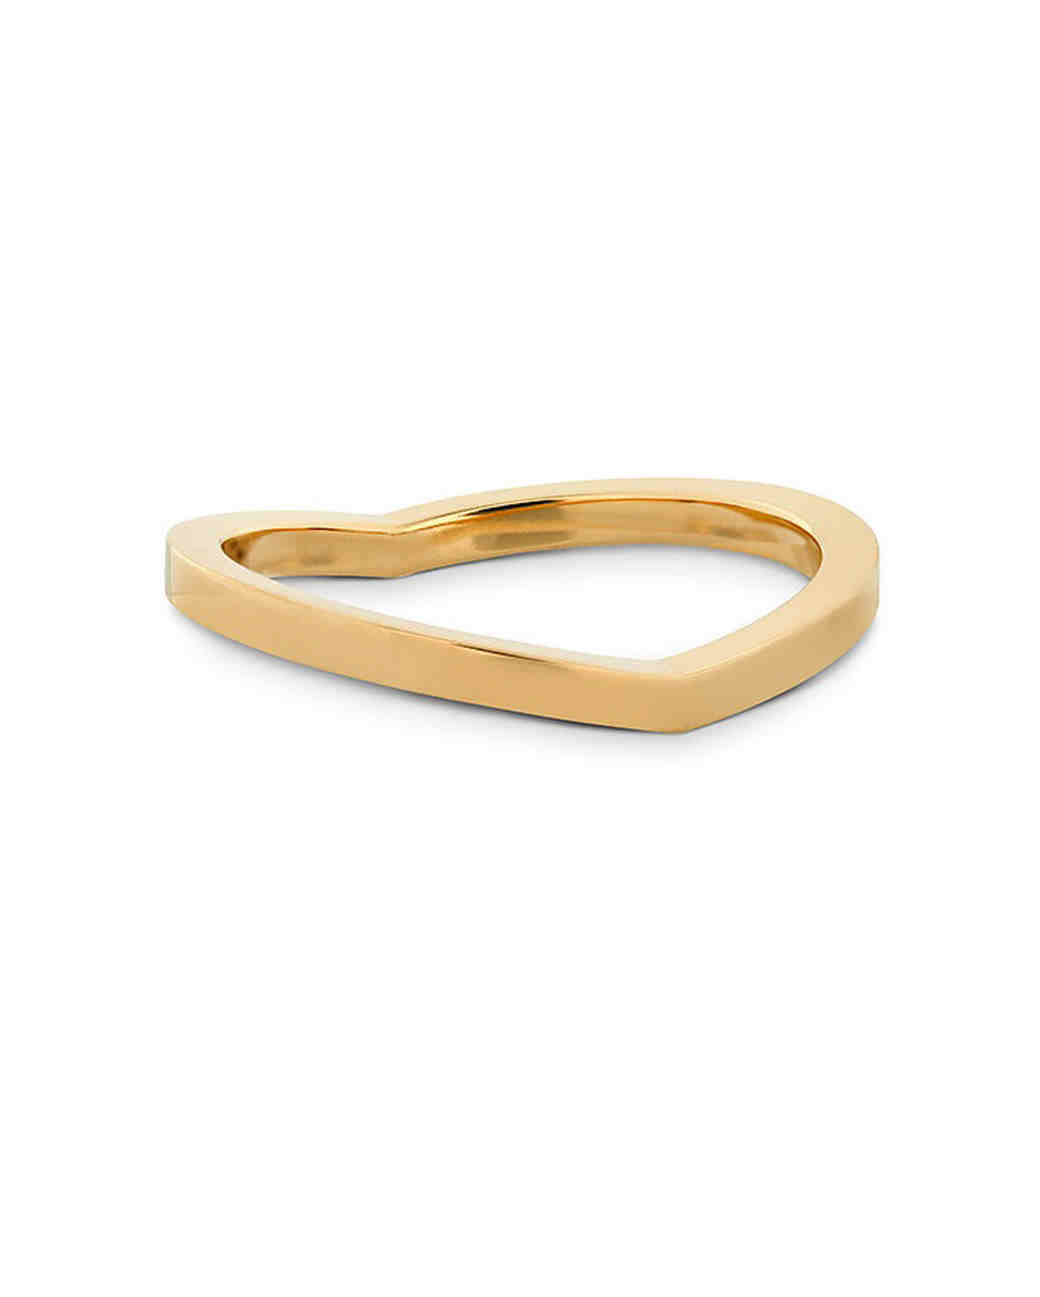 Wedding Bands That Pair Perfectly With Unique Engagement